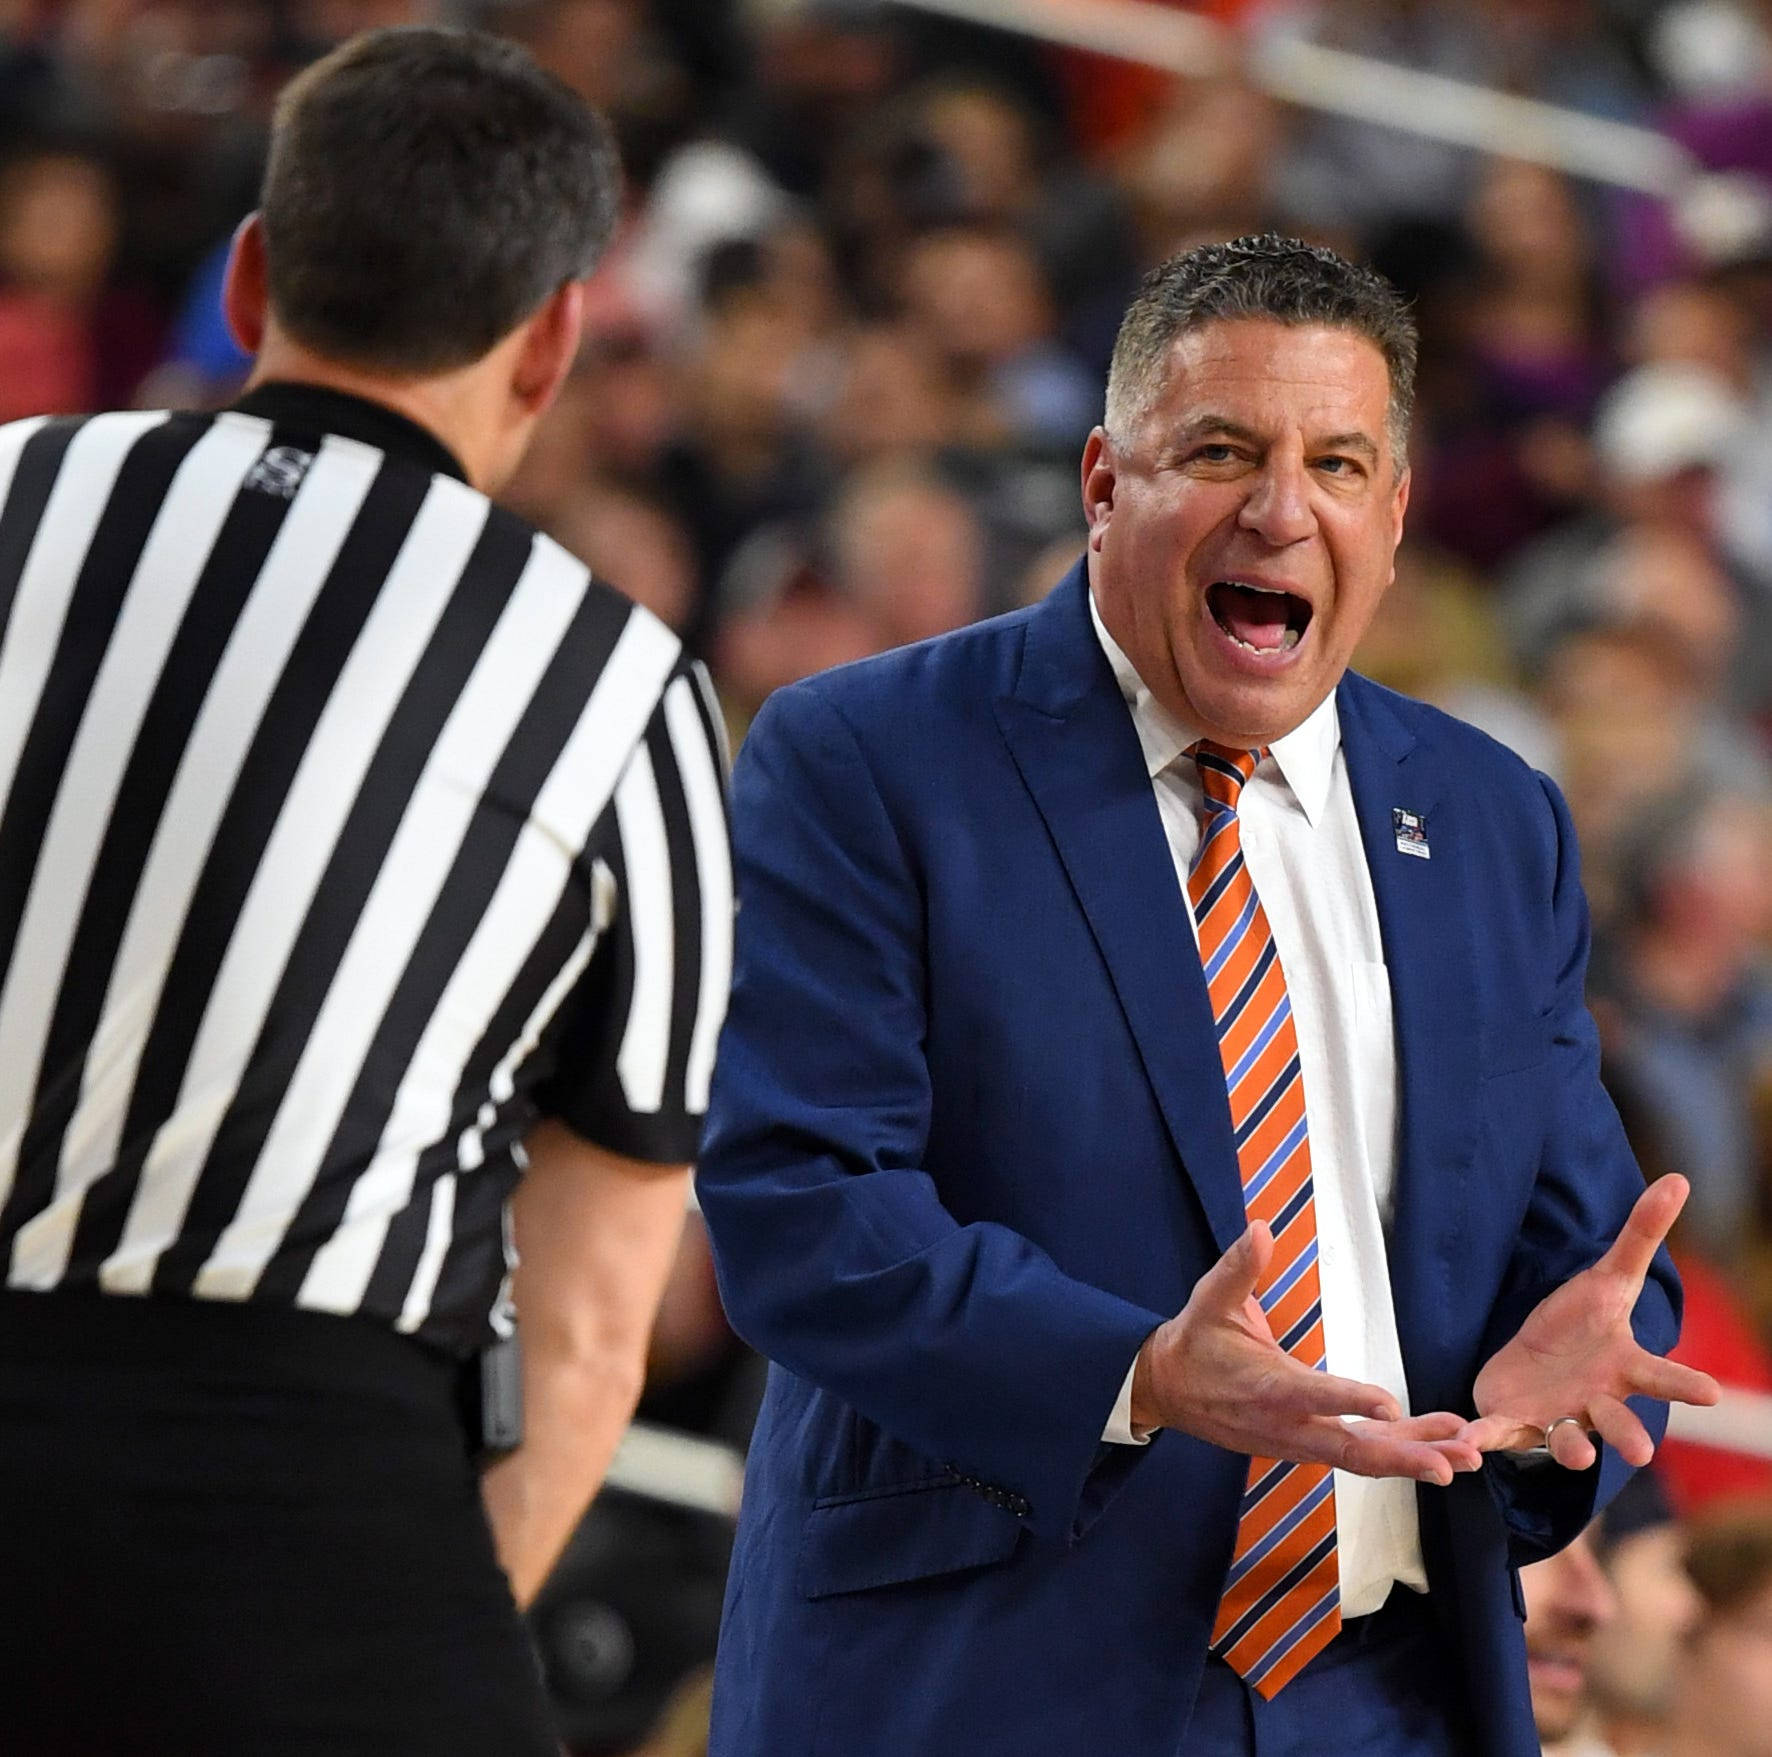 NCAA Final Four 2019: Who are the referees for the Virginia, Auburn basketball game?